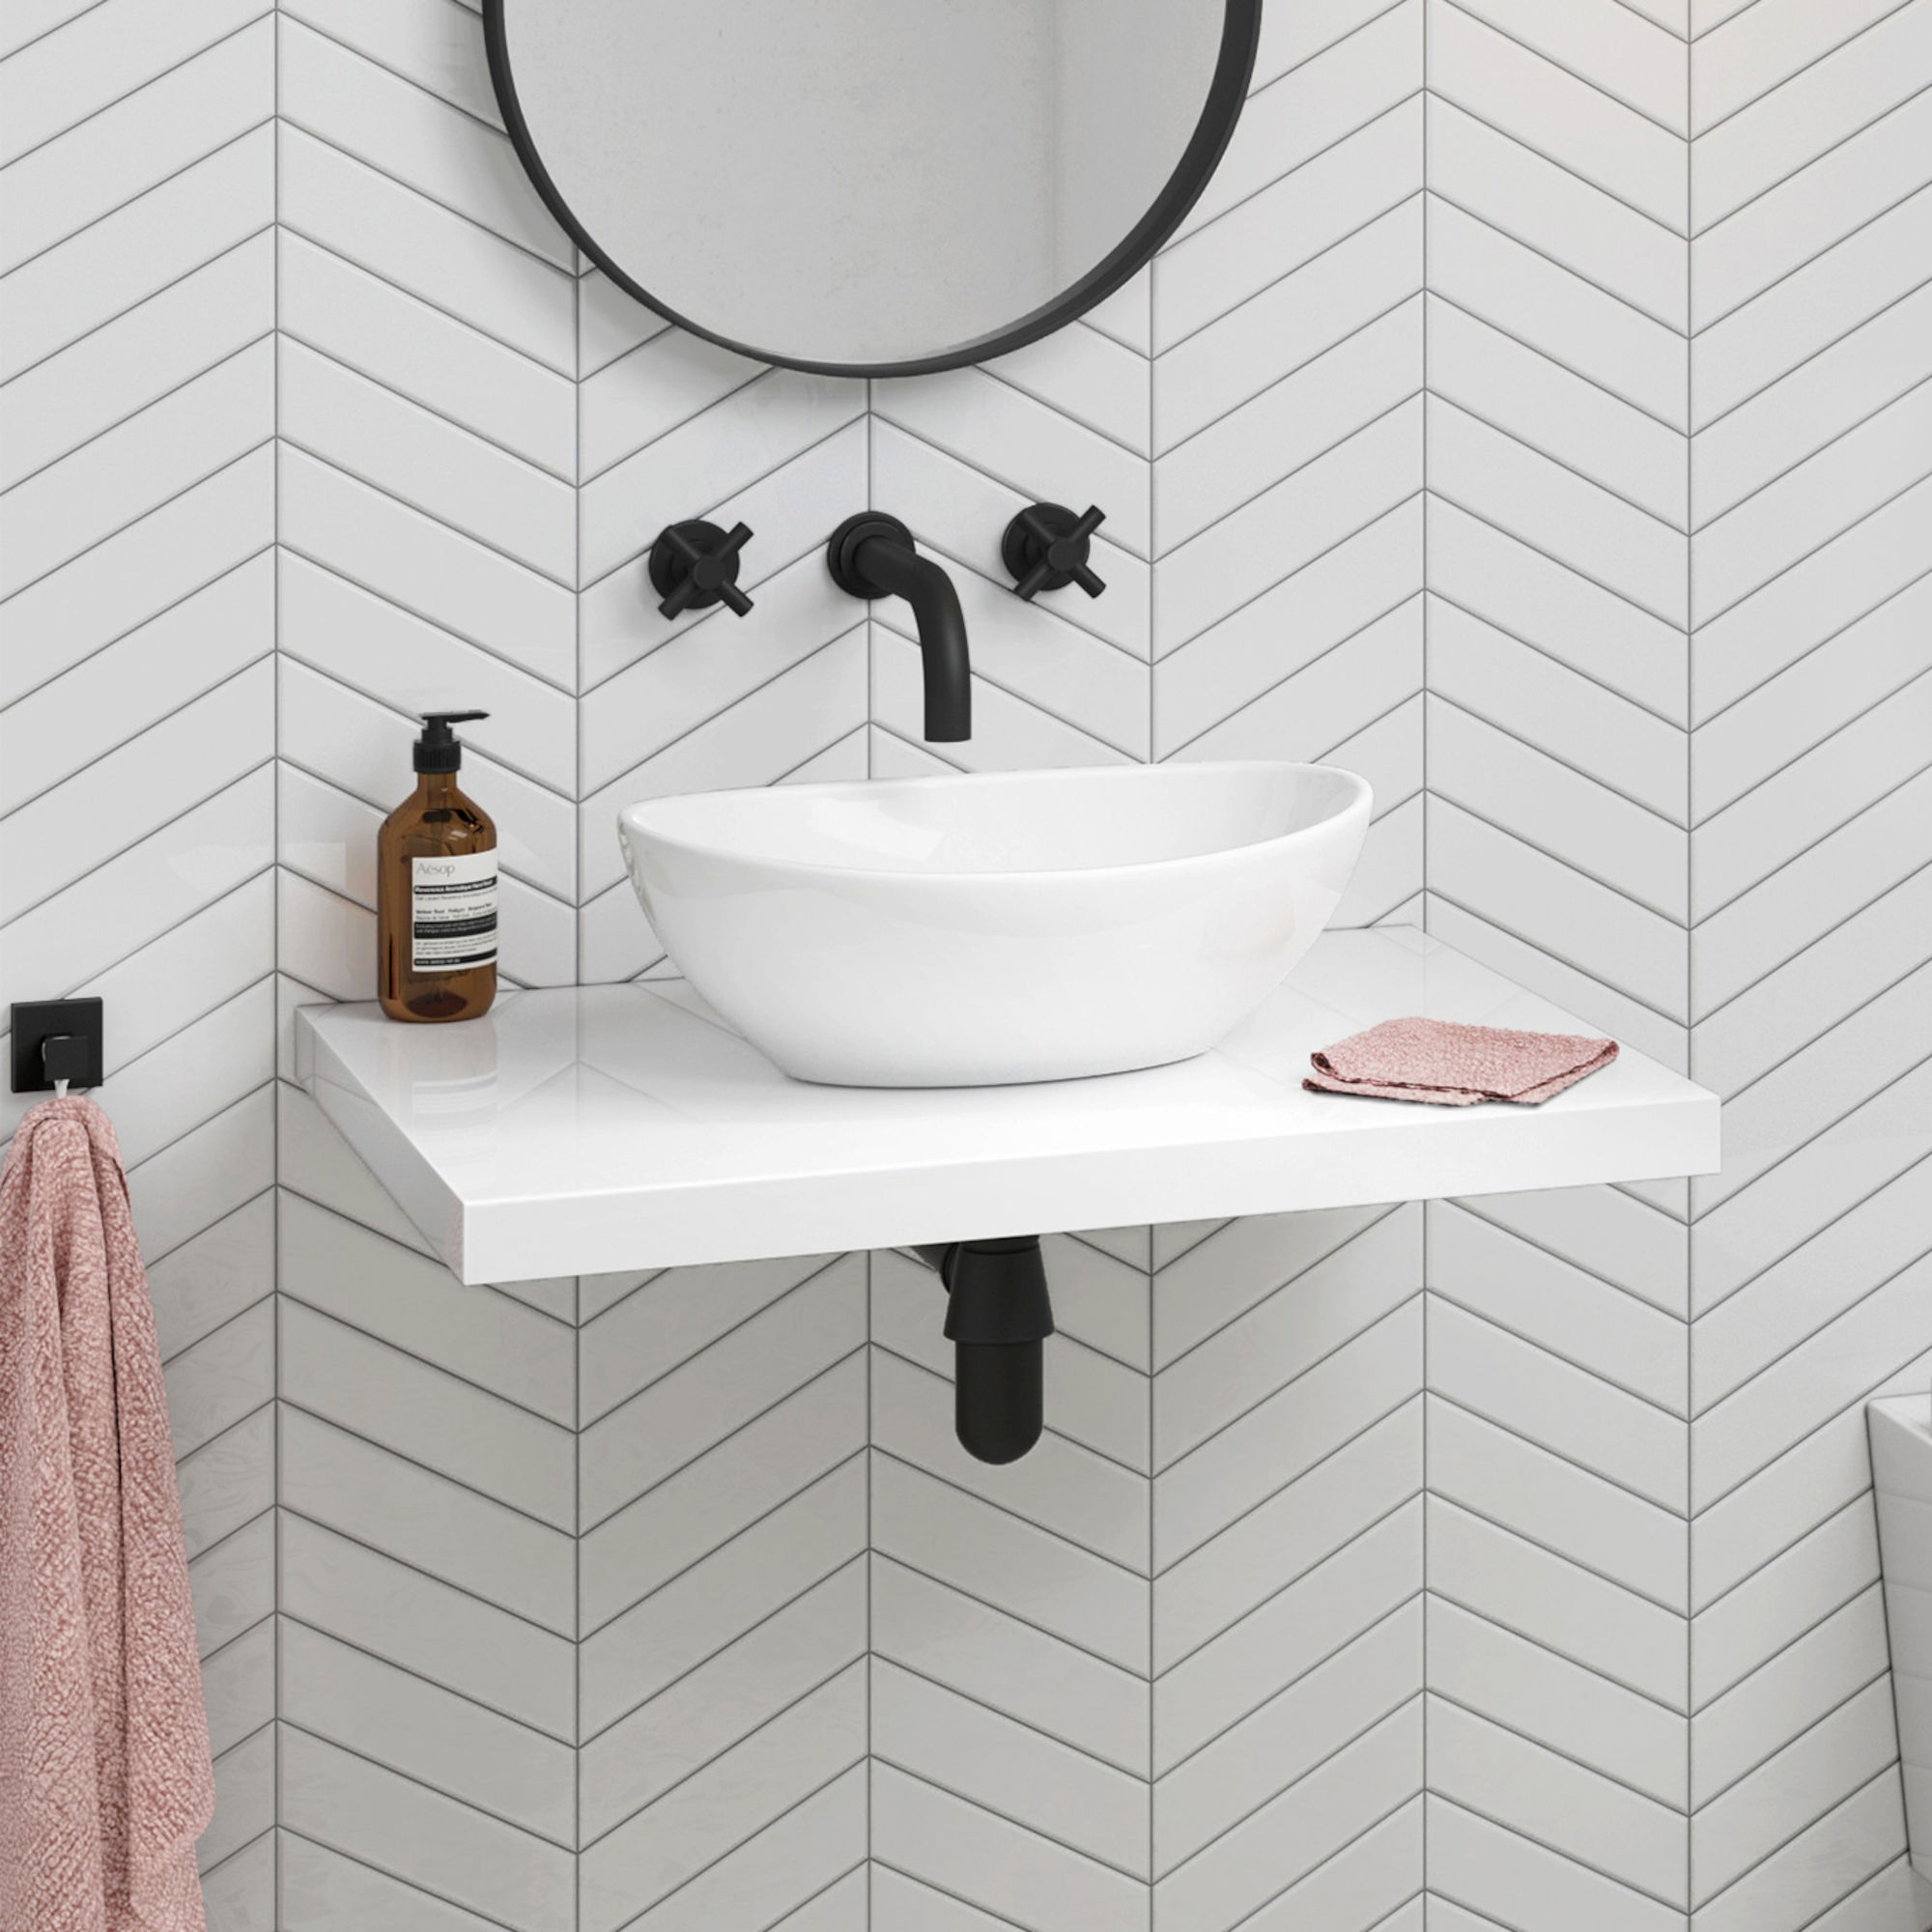 our new floating bathroom sinks for contemporary soak fscamhgw basin shelf gloss white wall hung countertop camila pottery barn closet coat stand and storage shelving systems